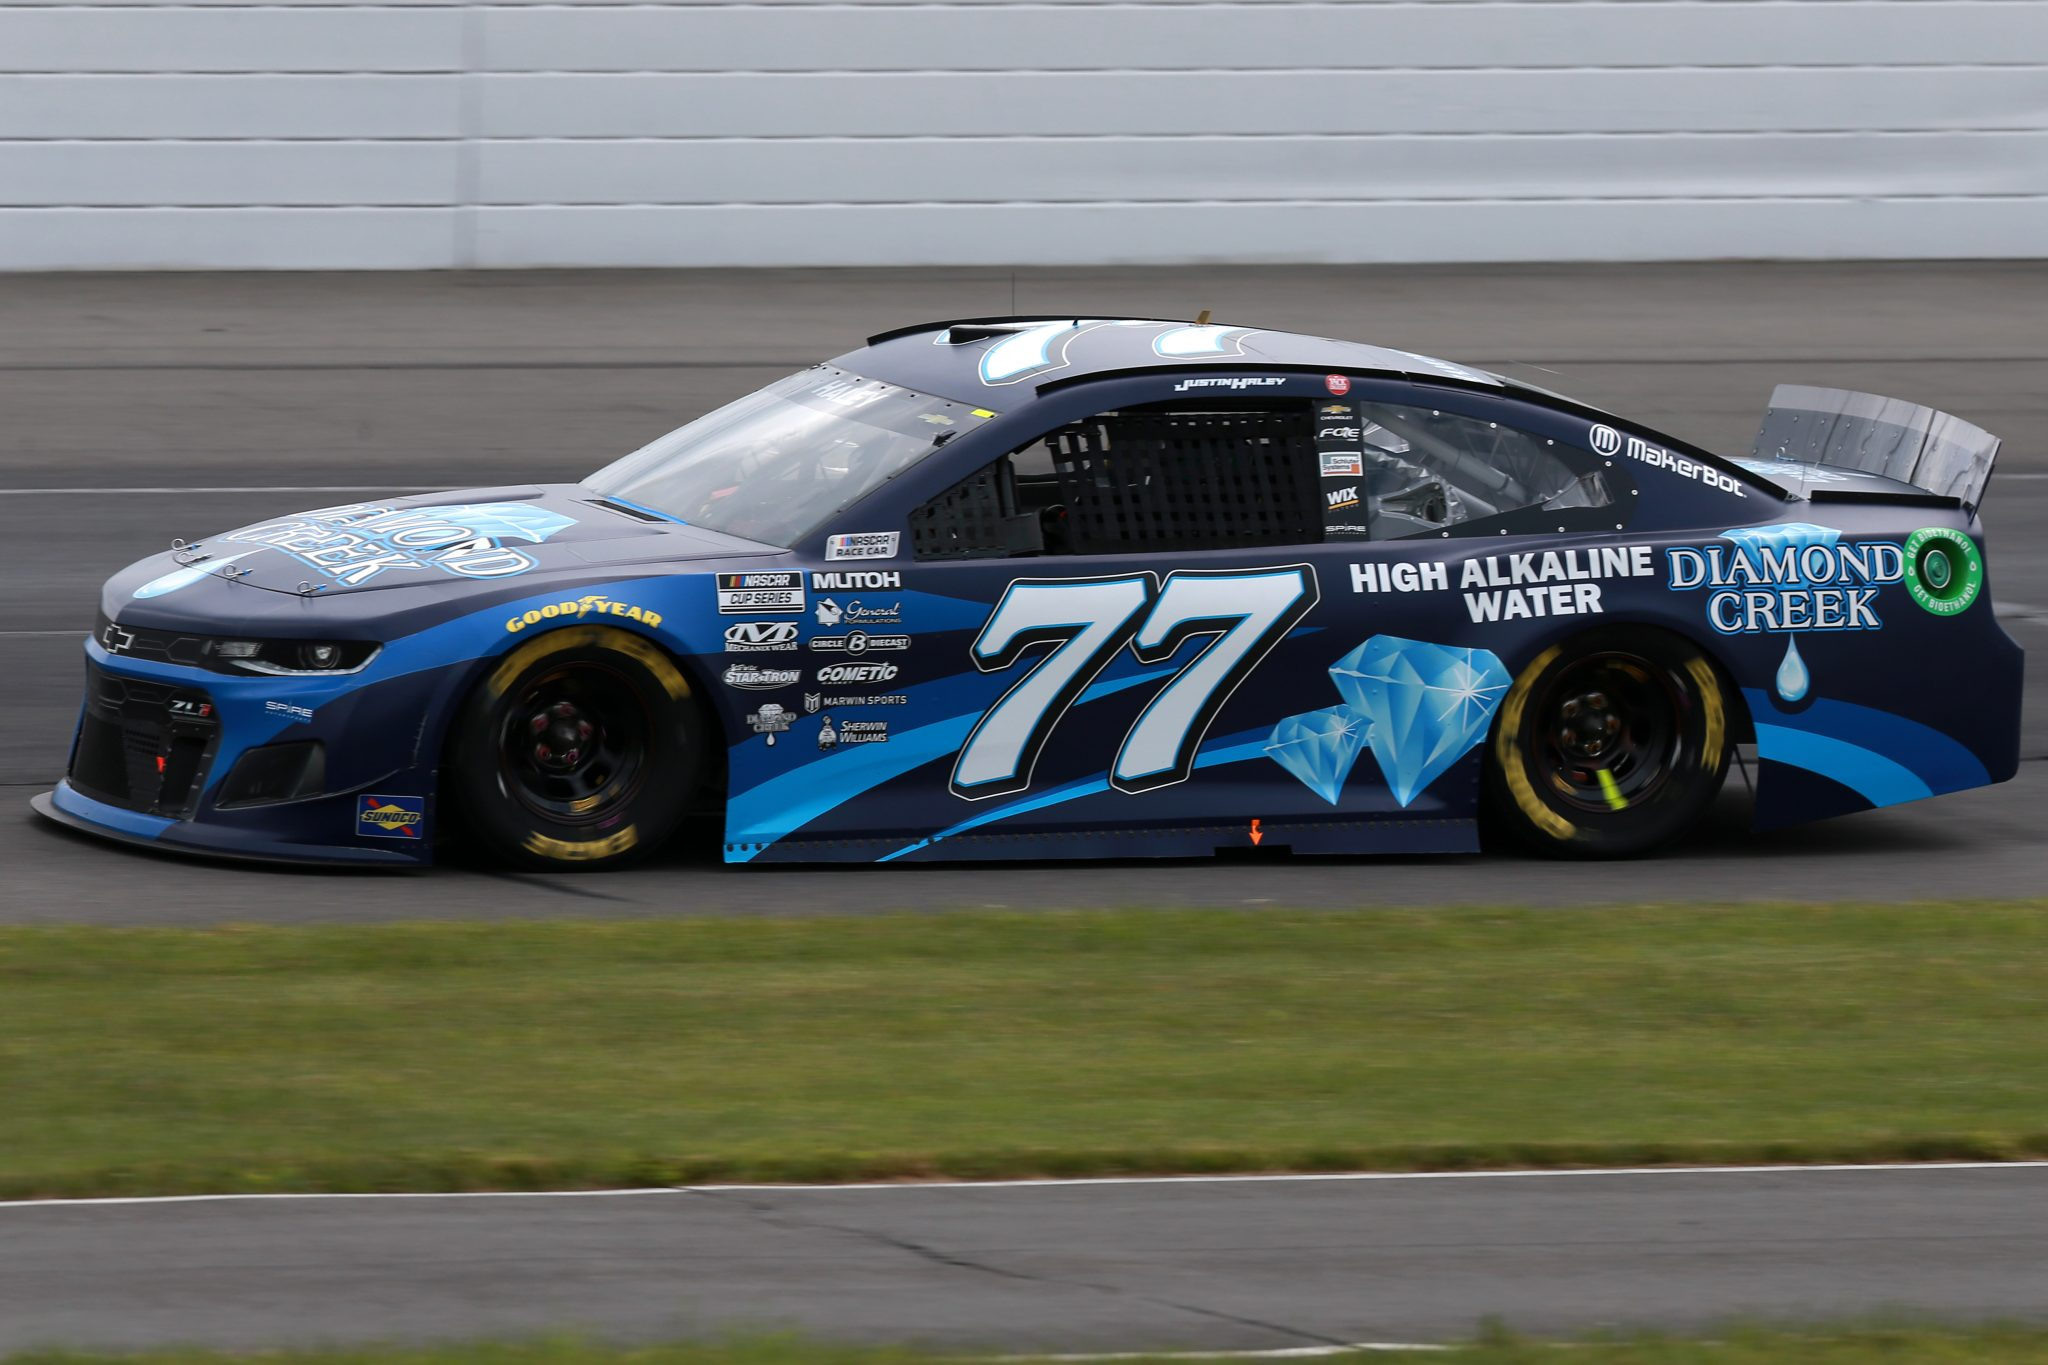 LONG POND, PENNSYLVANIA - JUNE 26: Justin Haley, driver of the #77 Diamond Creek Water Chevrolet, drives during the NASCAR Cup Series Pocono Organics CBD 325 at Pocono Raceway on June 26, 2021 in Long Pond, Pennsylvania. (Photo by Sean Gardner/Getty Images) | Getty Images